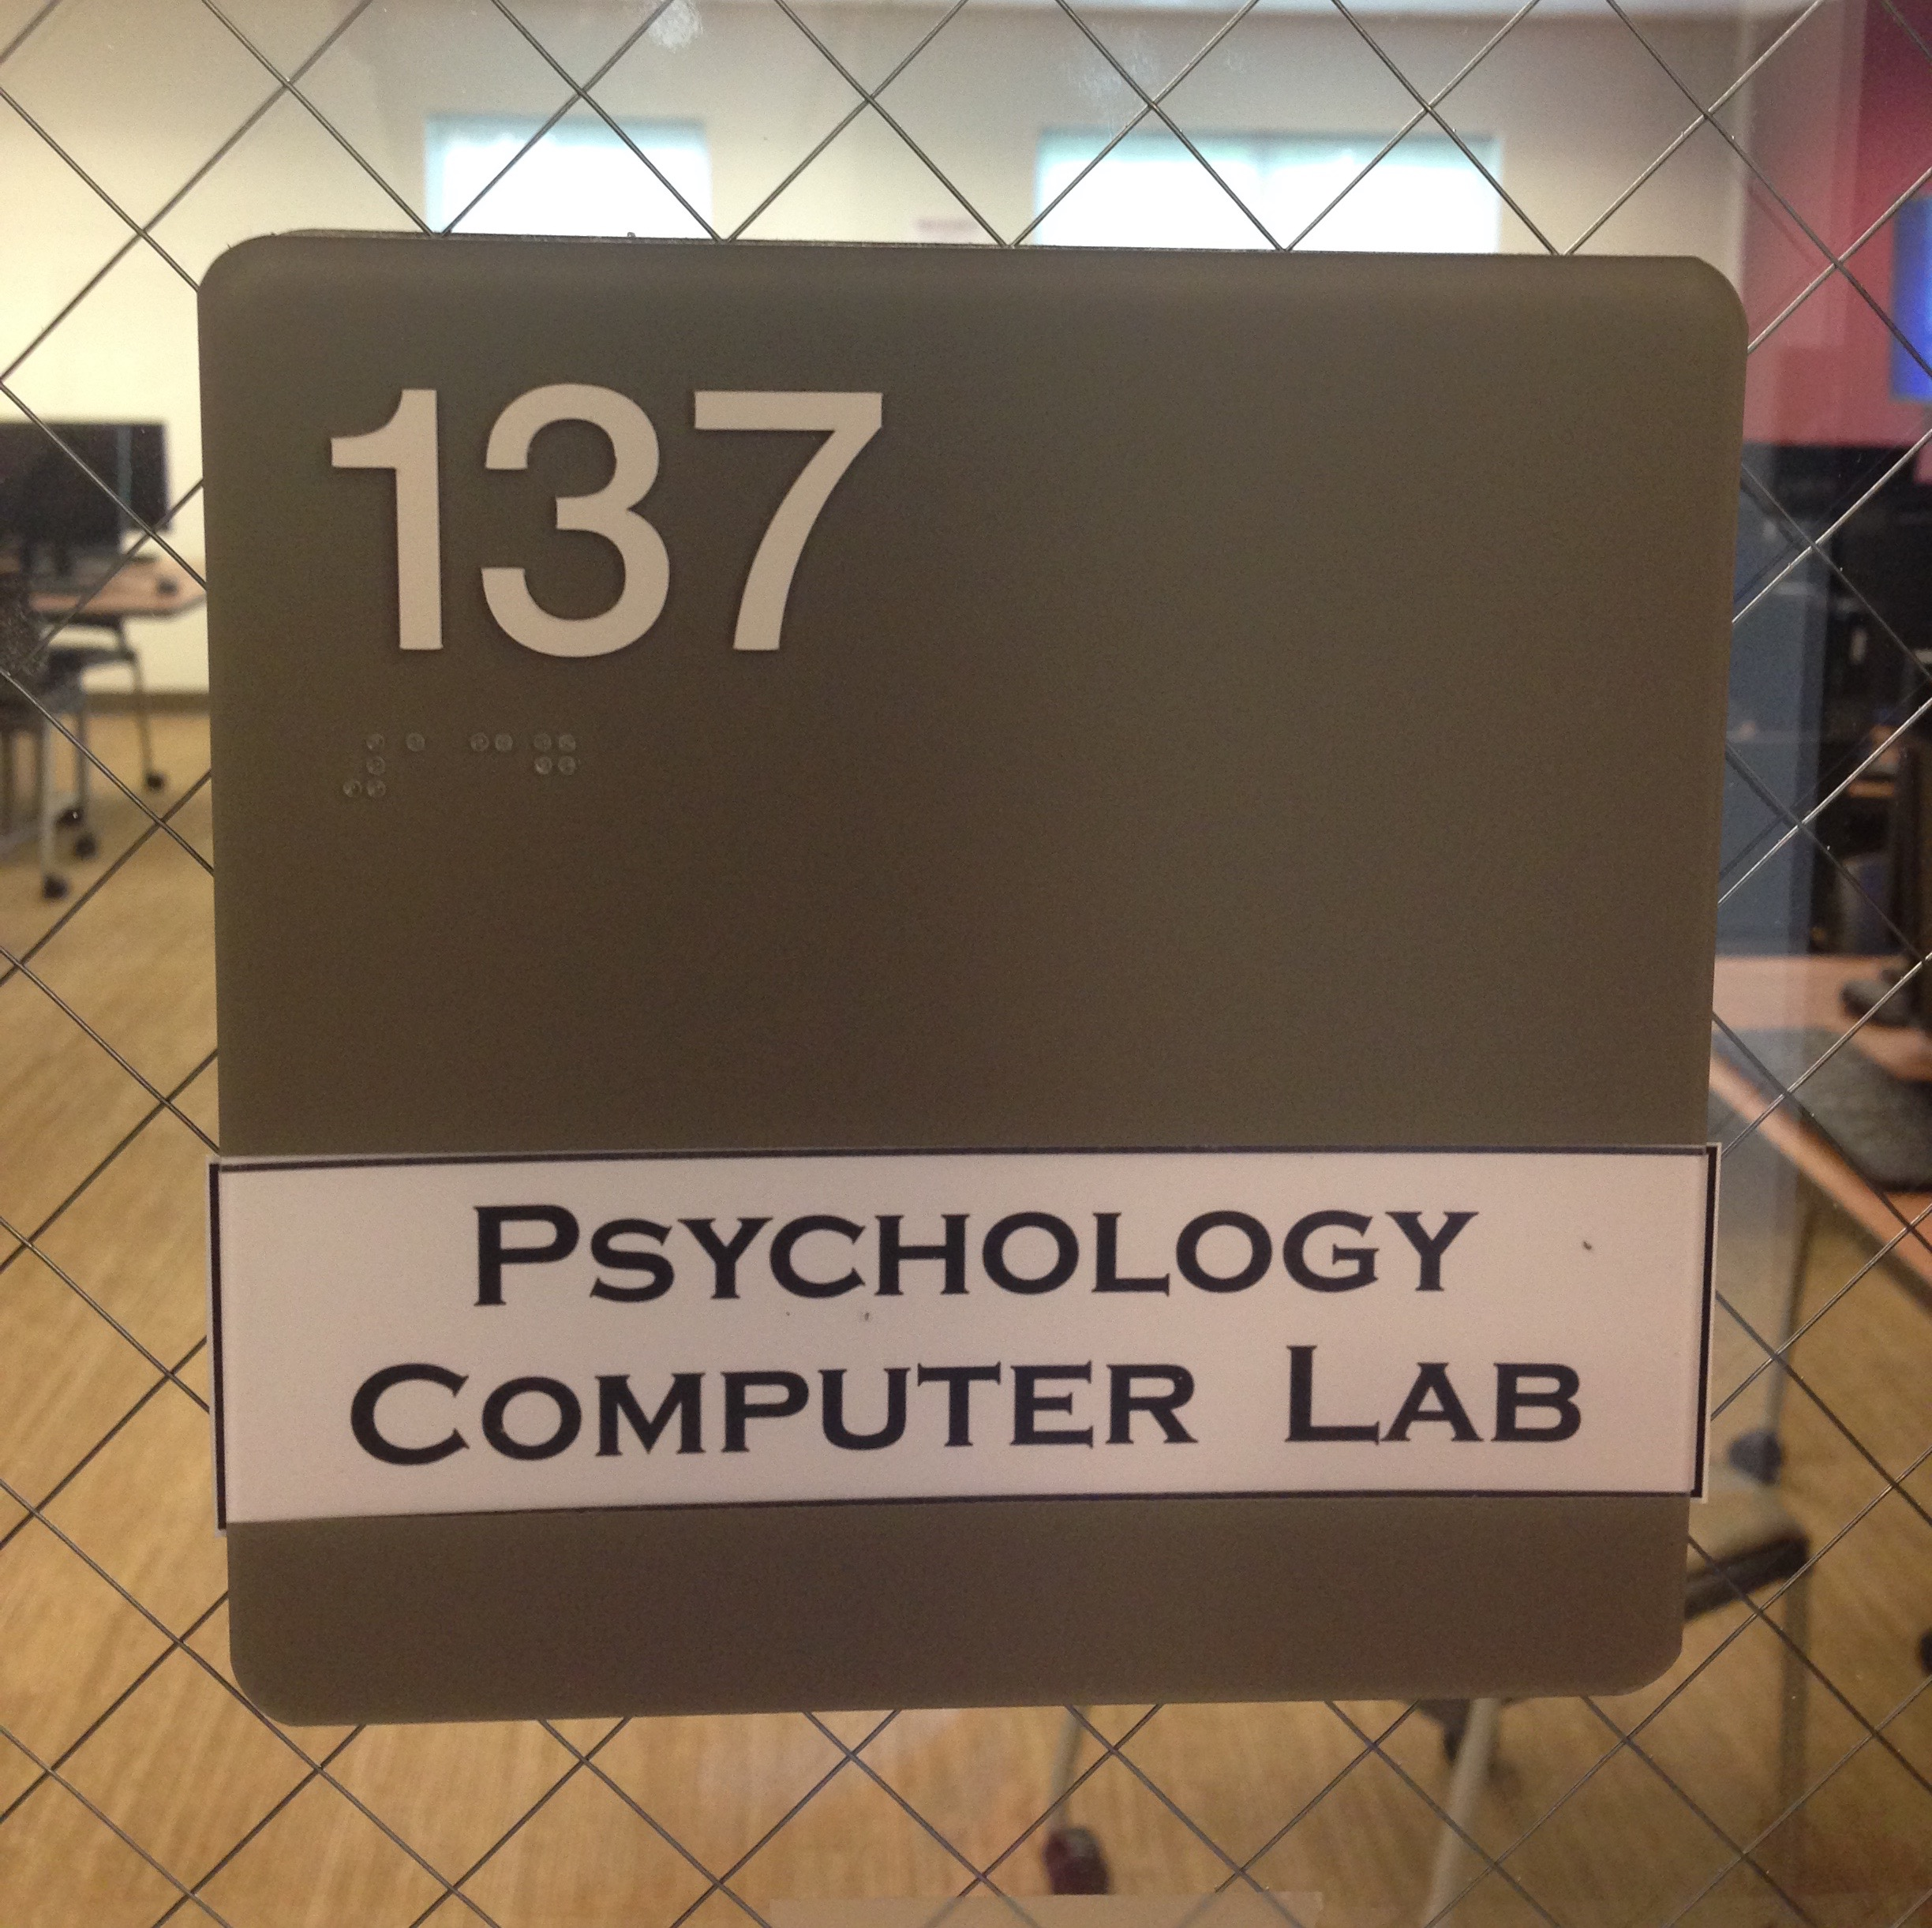 A picture of the sign for room #137.